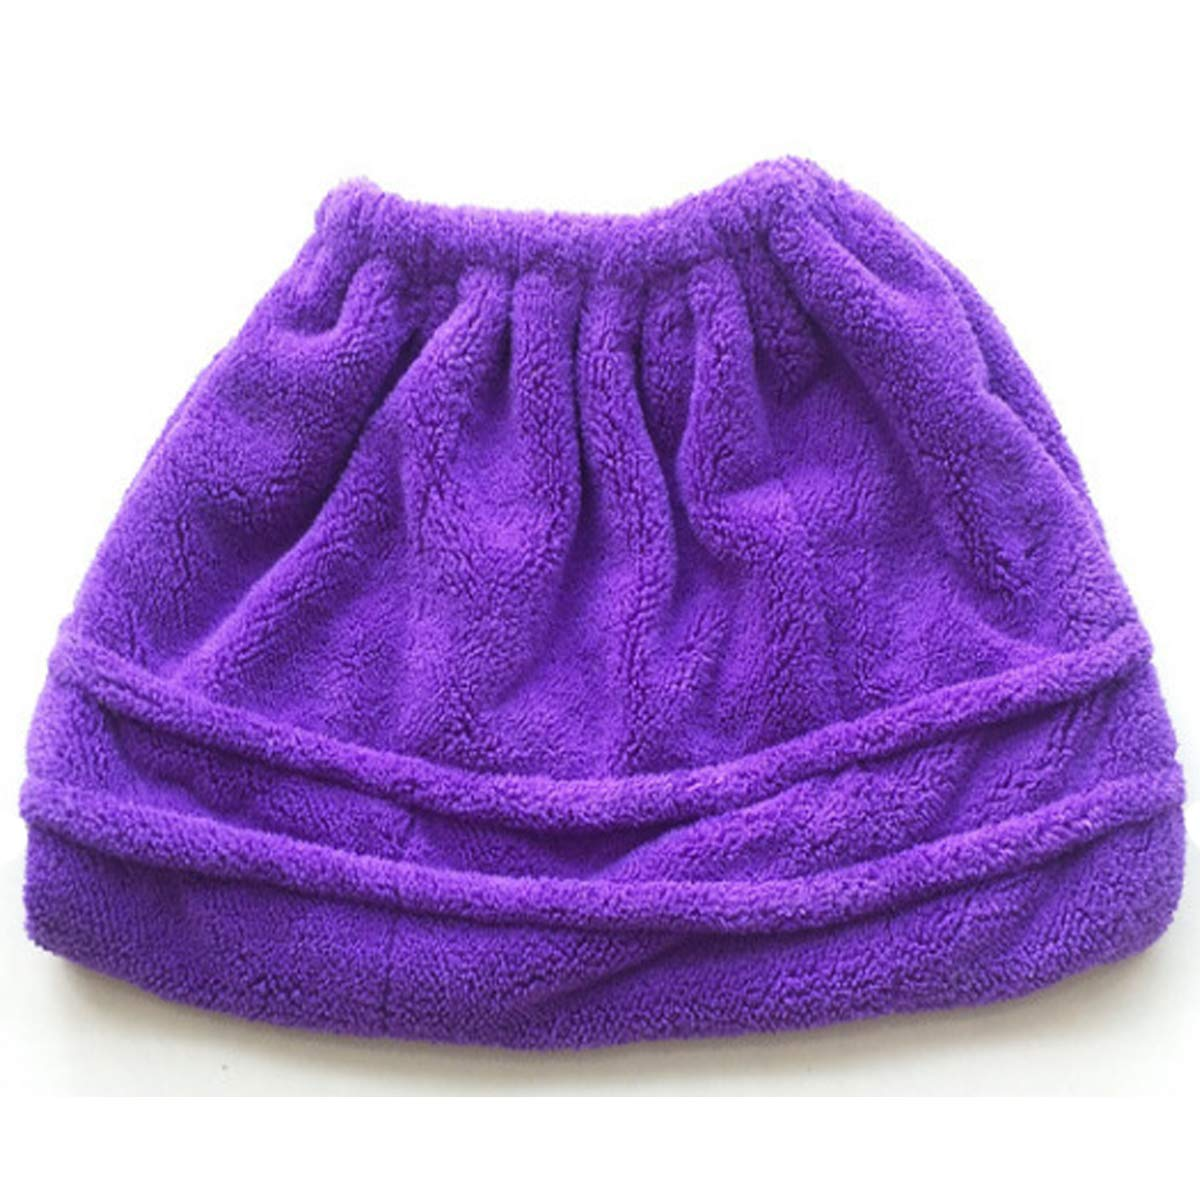 Reusable Washable Flannel Mop Head Replacement Cover - Multifunctional Lazy Mop Cloth - Mop Sweeping Artifact (Purple)